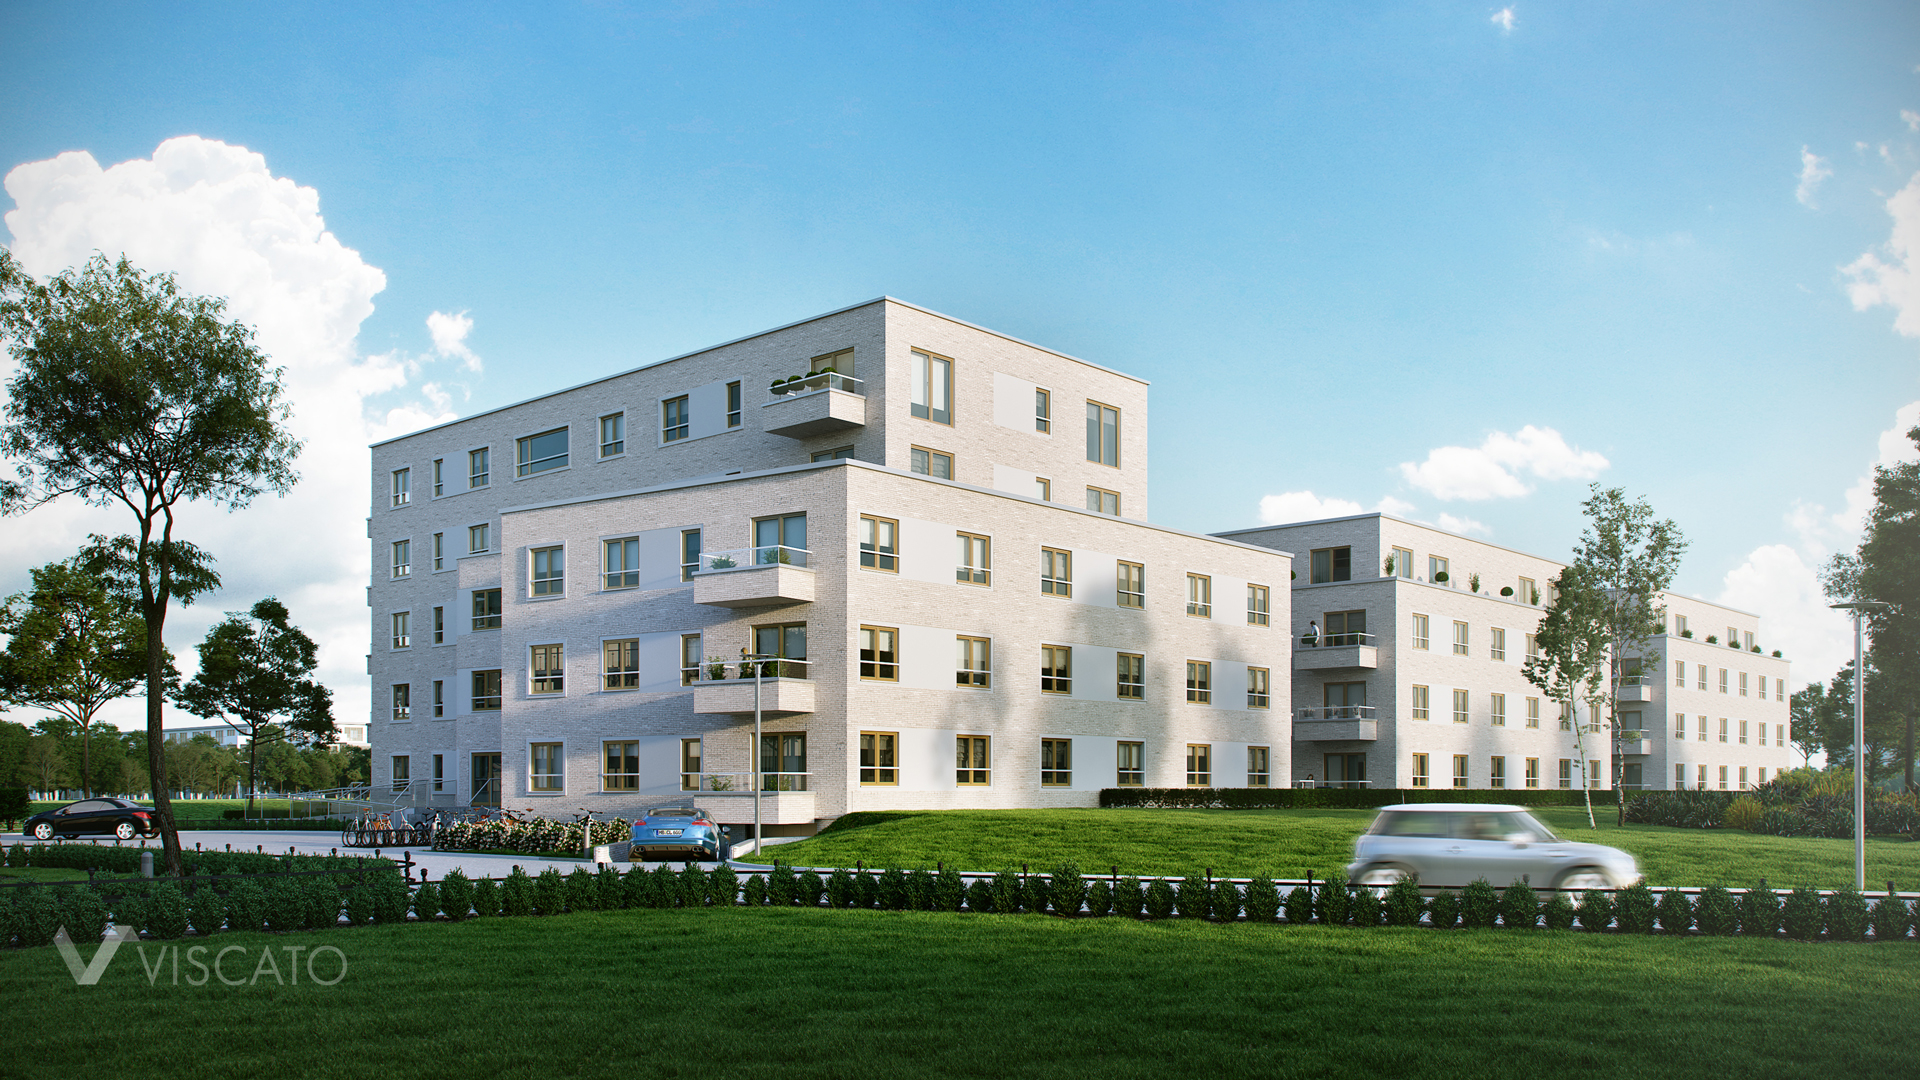 Rendering of an apartment block prepared for German company Viscato